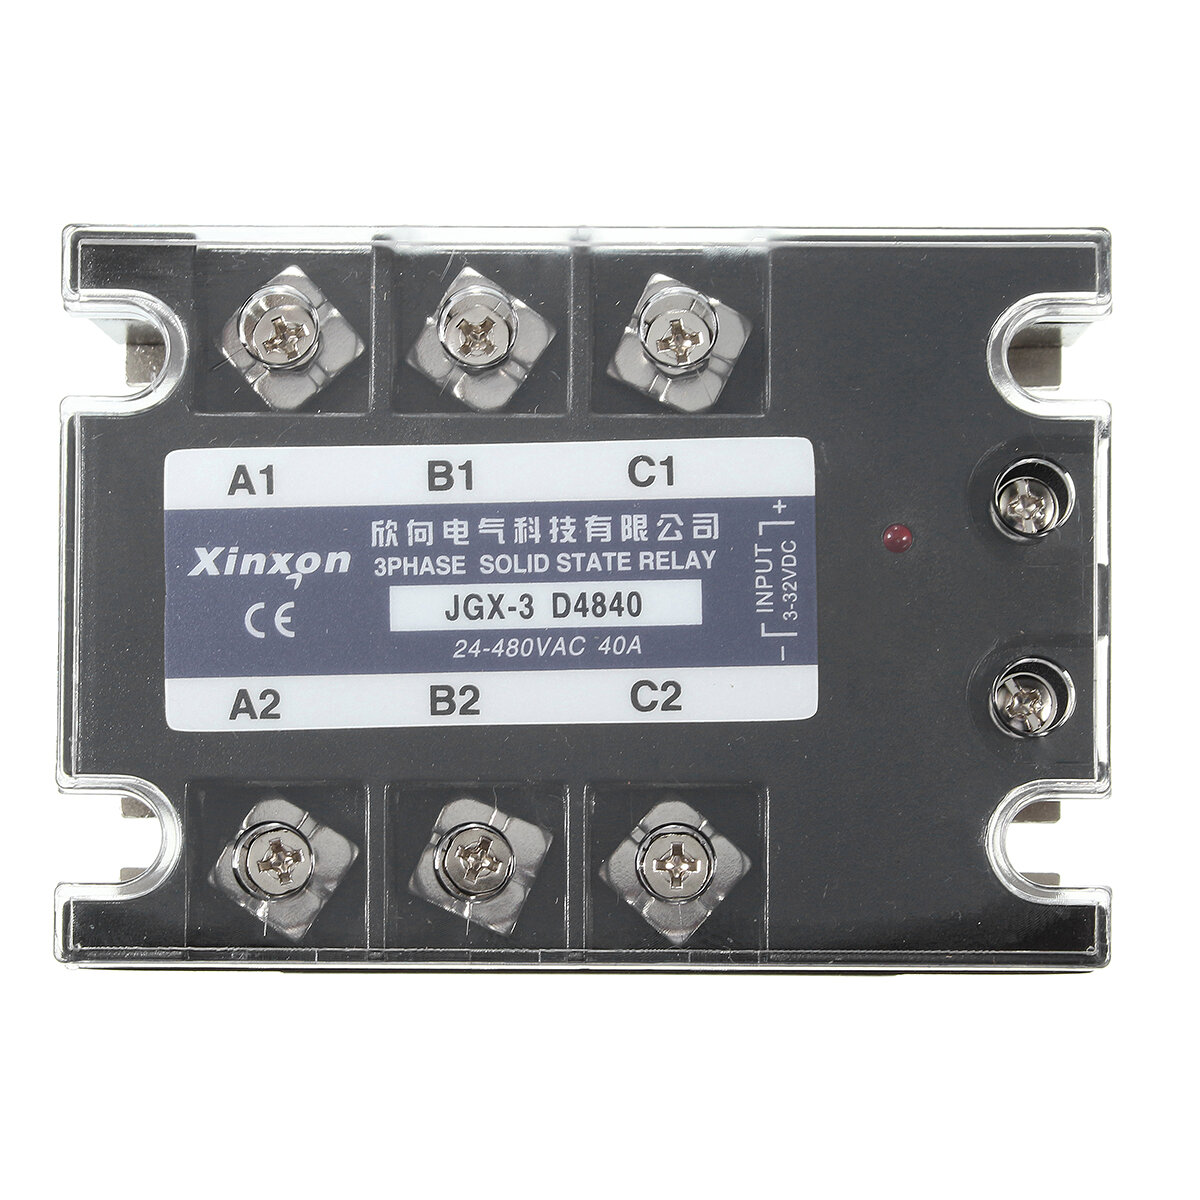 Jgx 3 D4840 Three Phase Solid State Relay Ssr Dc Ac 40a Input Control